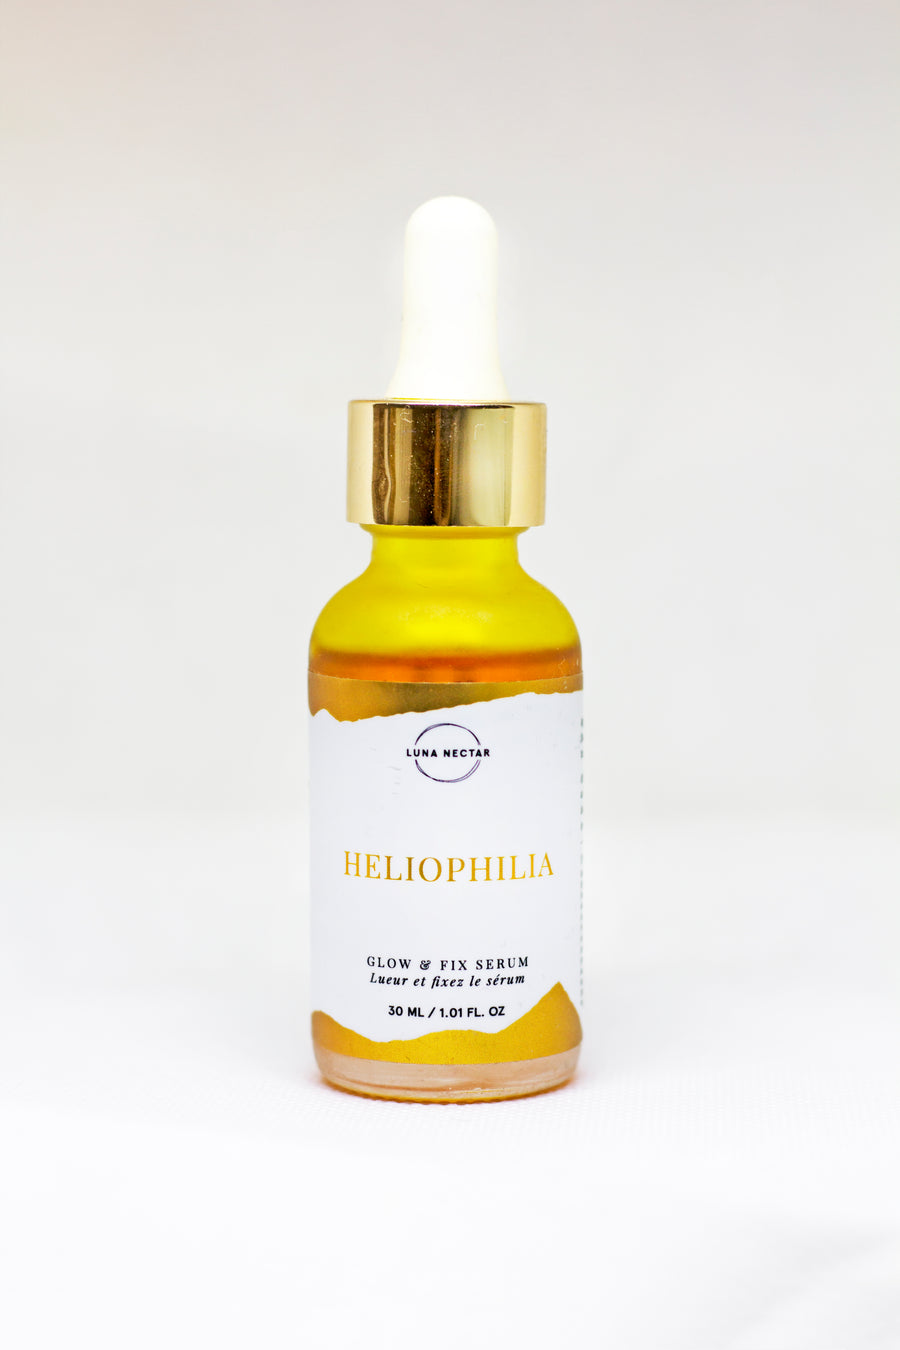 Heliophilia Glow & Fix Serum<br><font size=1><i>universal hydrating face & hair serum</font></i>